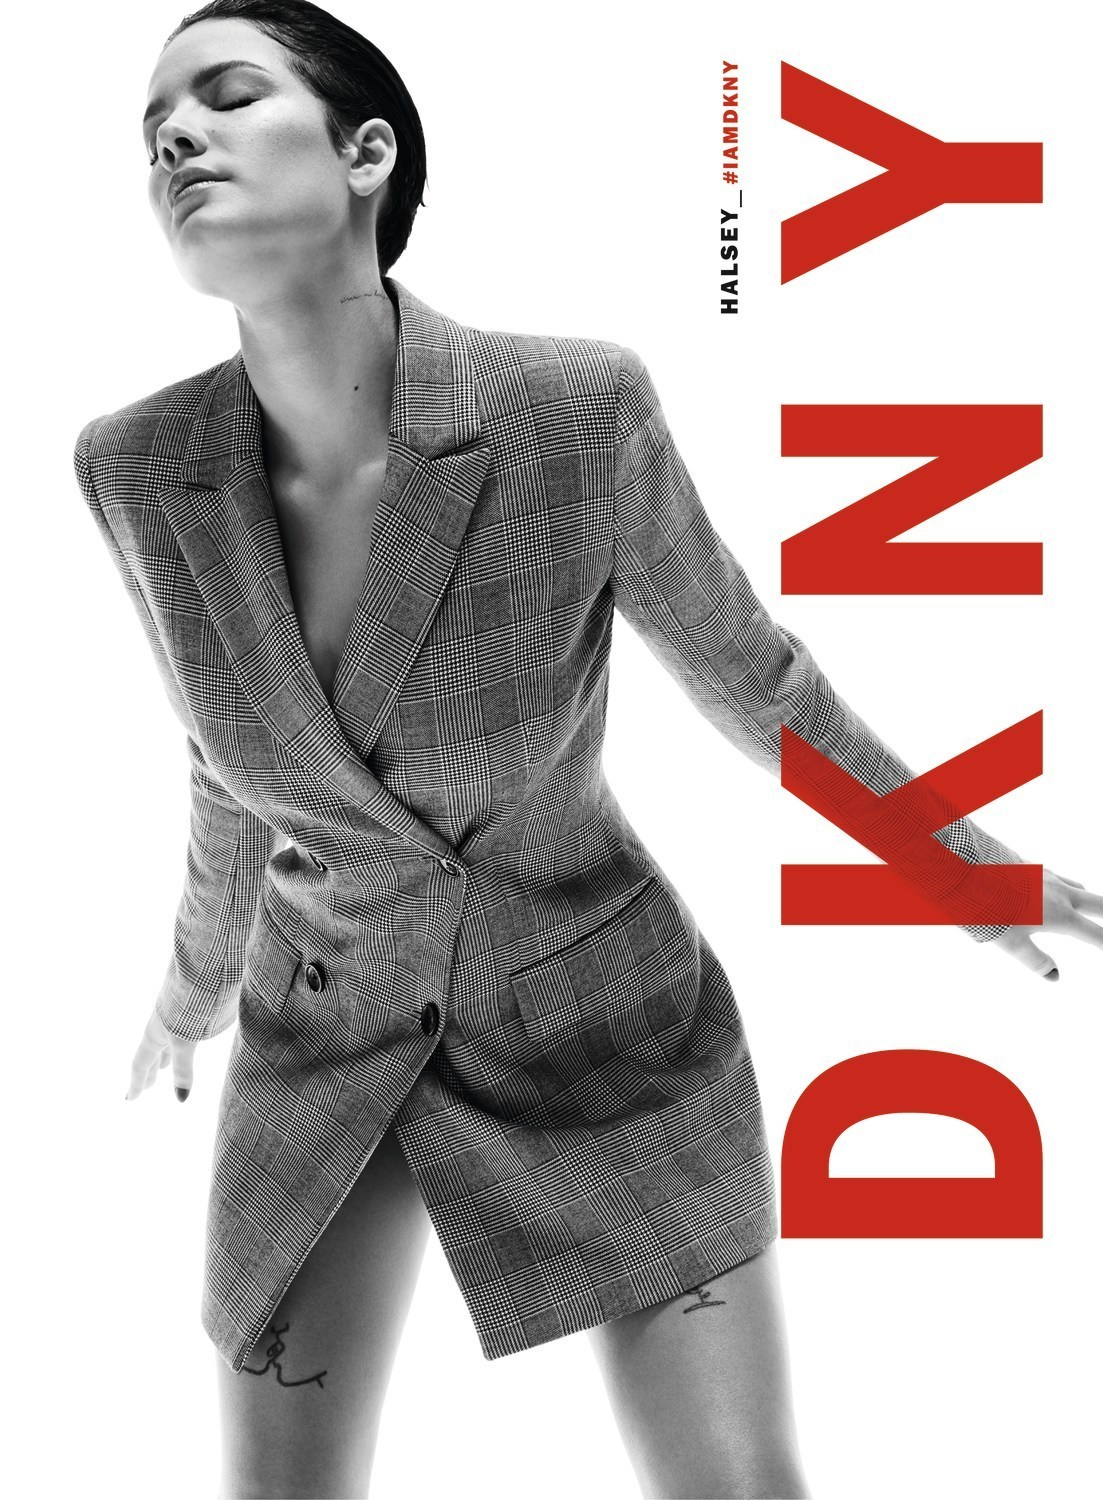 Black and white advertising photograph of American singer Halsey in a DKNY checkered crossover suit for the Fall19 campaign.